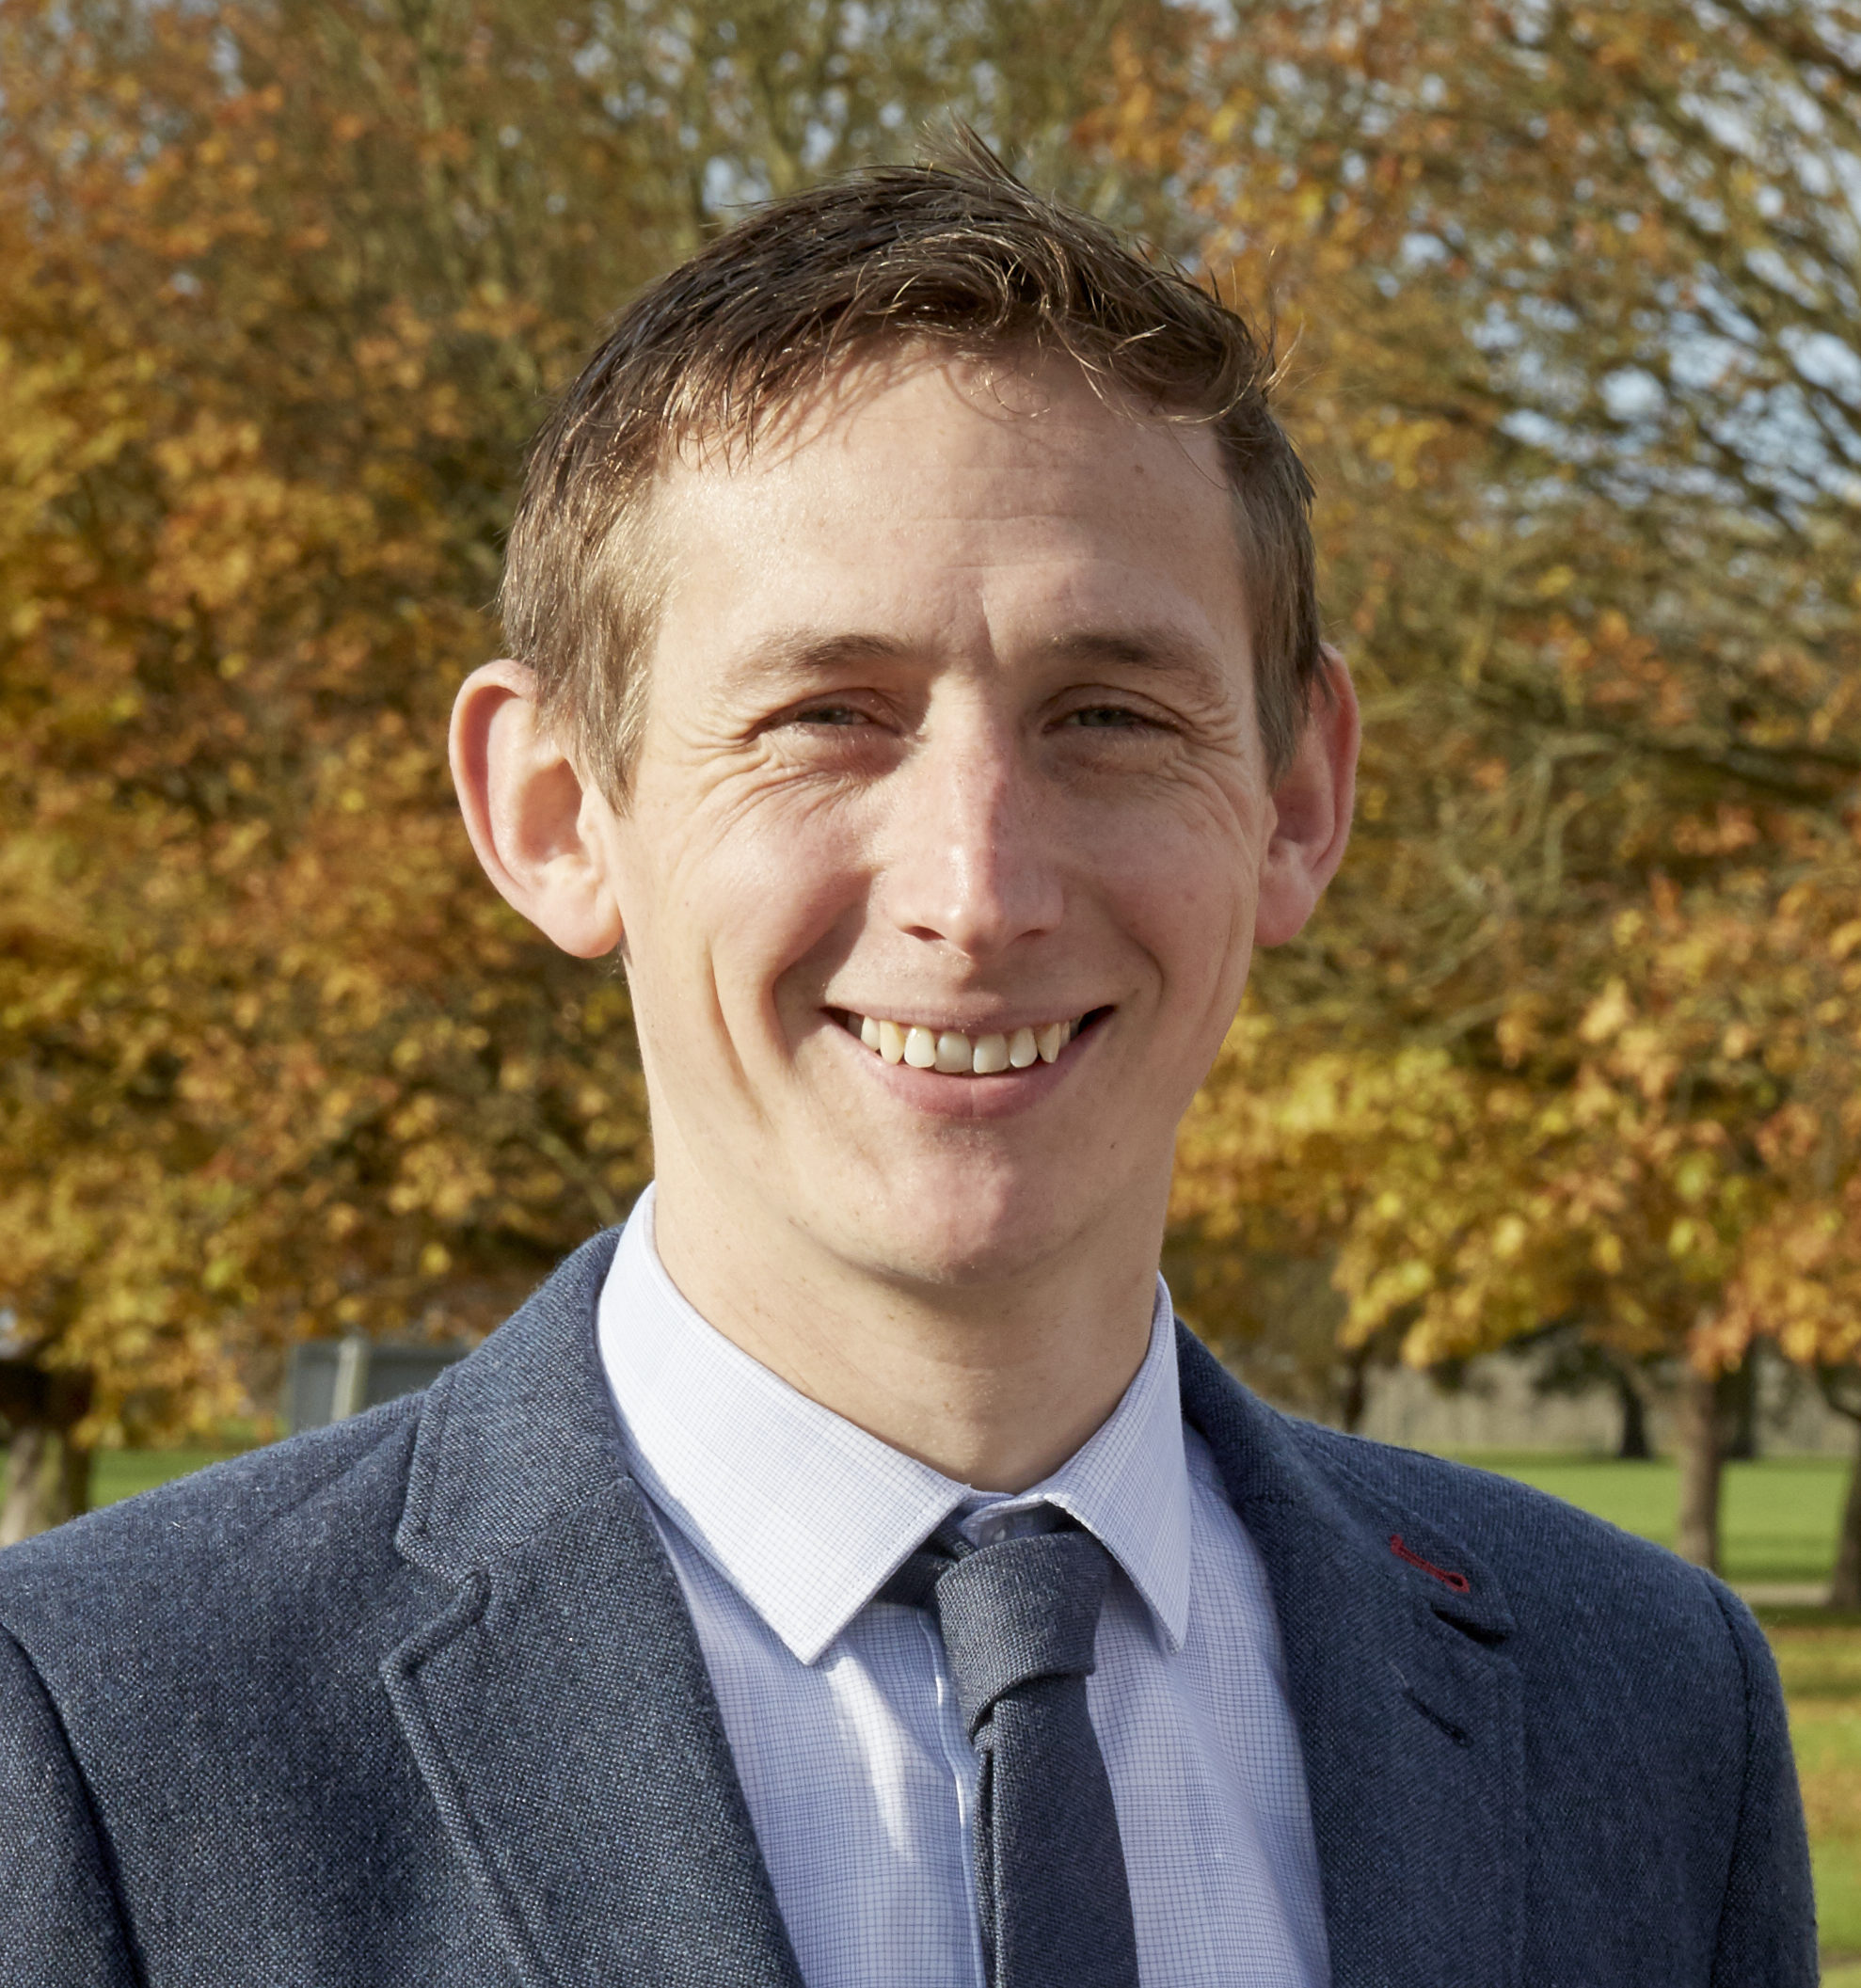 James has over a decade of experience in odour sampling and odour control methods